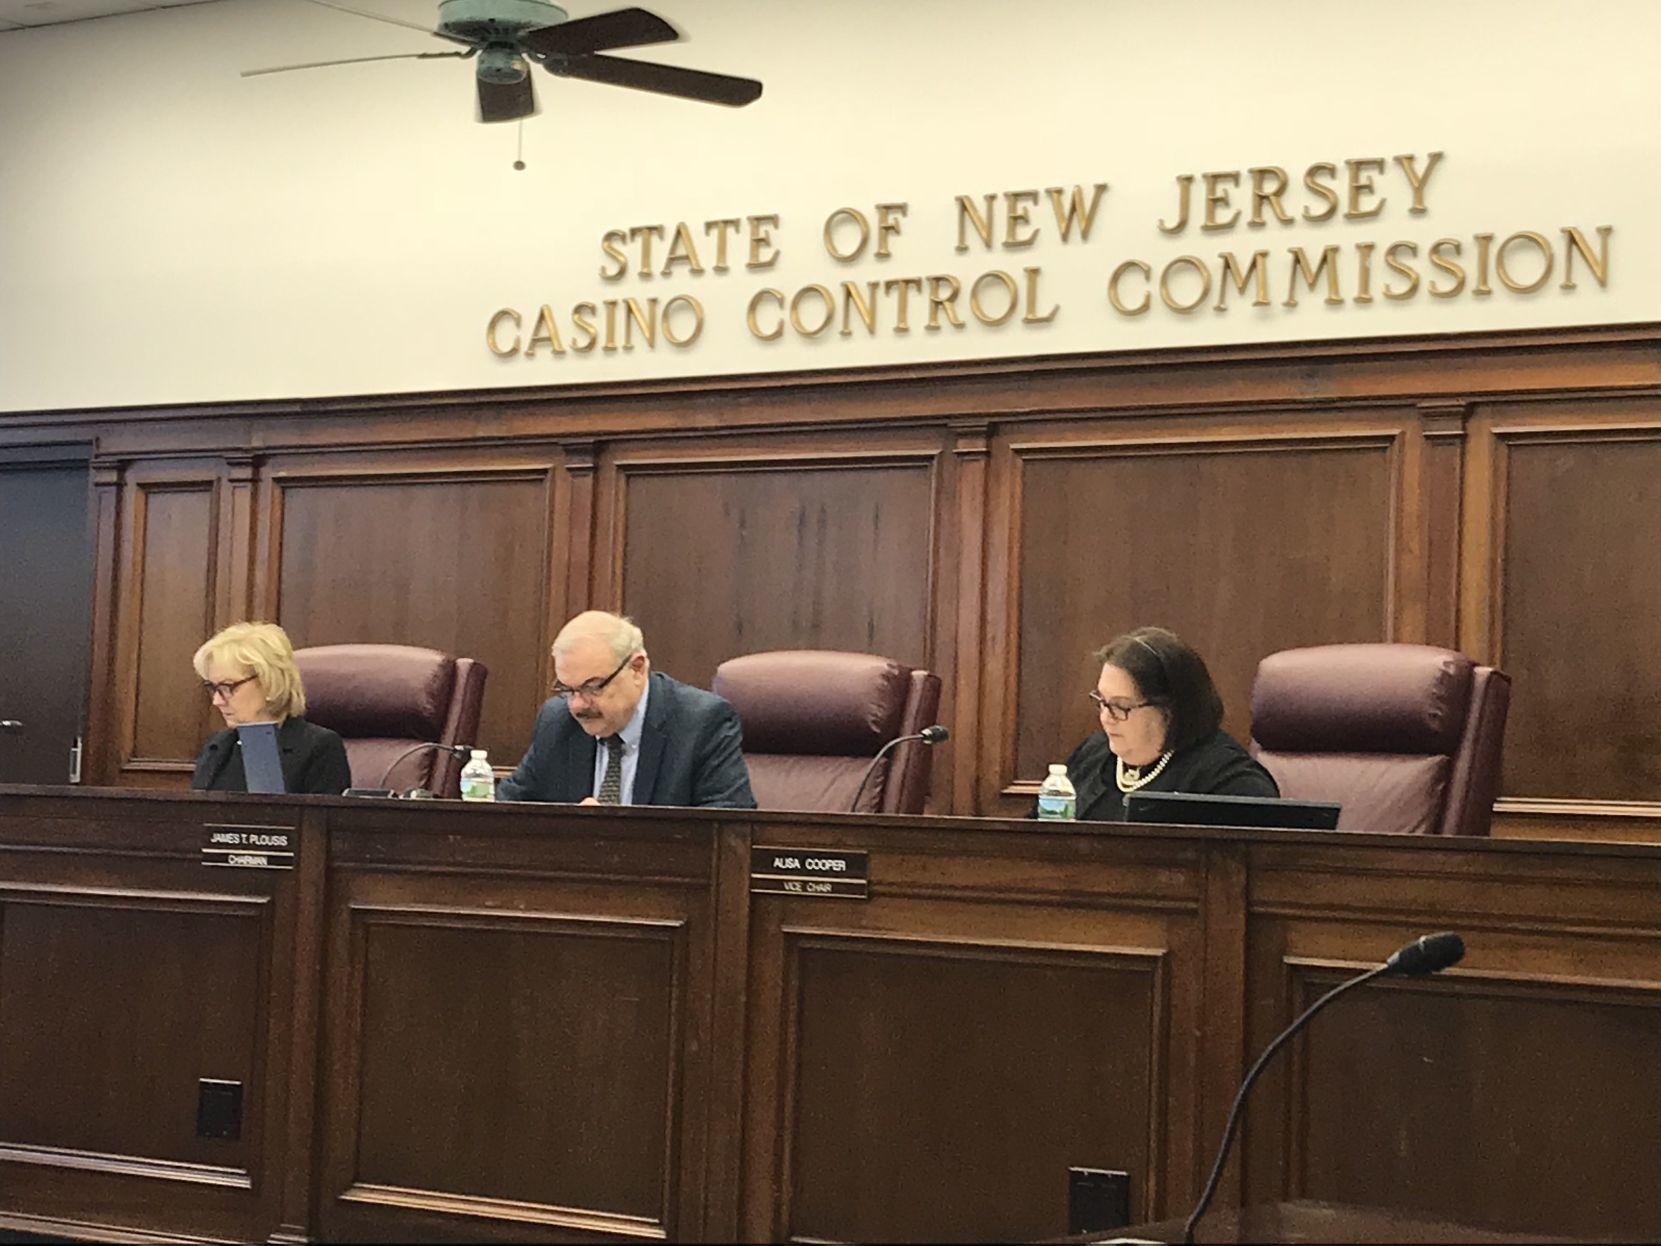 State of new jersey casino control commission forms gala casino poker schedule leeds